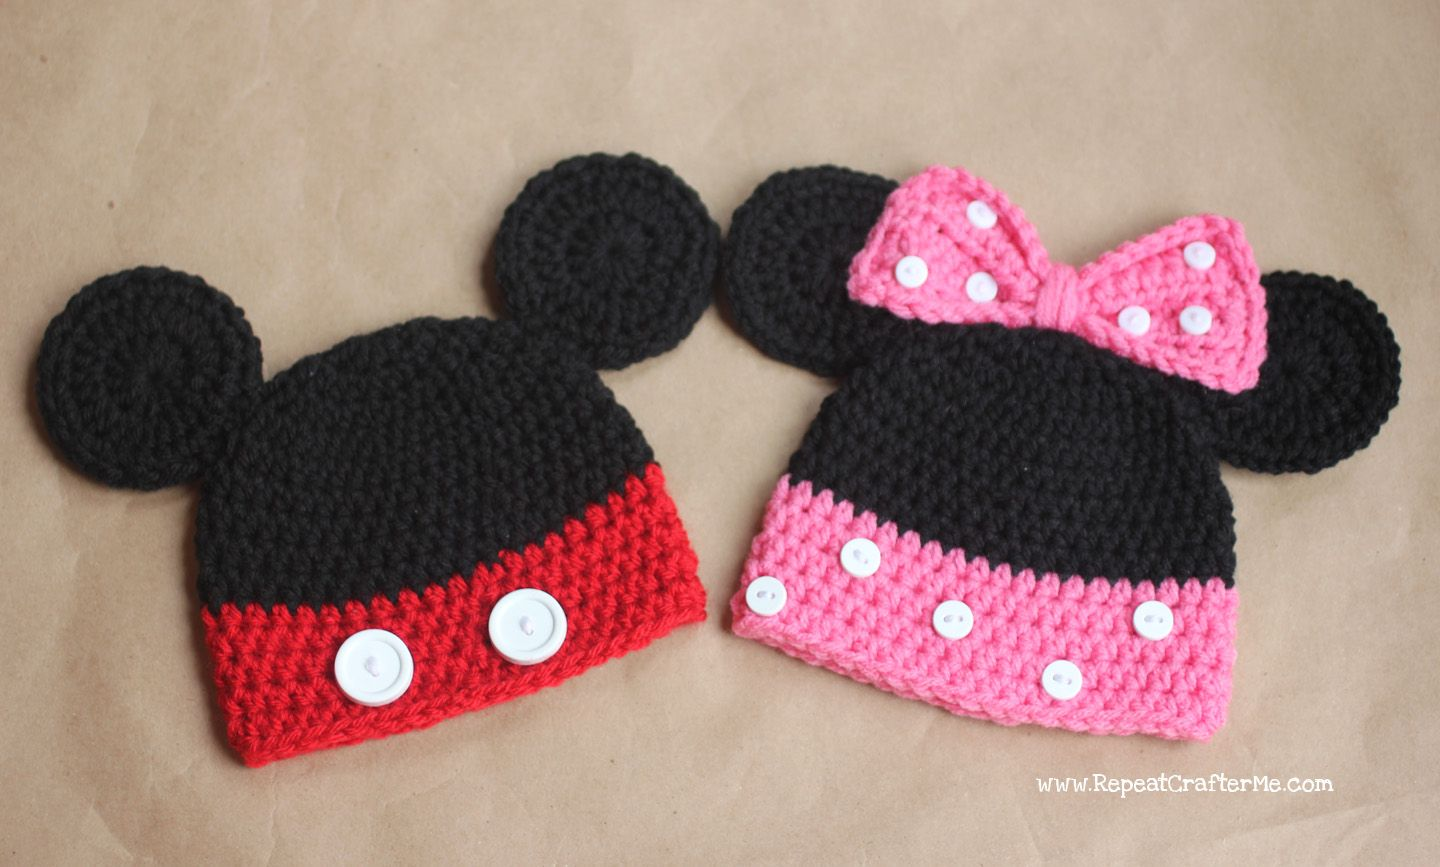 Mickey and Minnie Mouse Crochet Hat Pattern | Diane | Pinterest ...